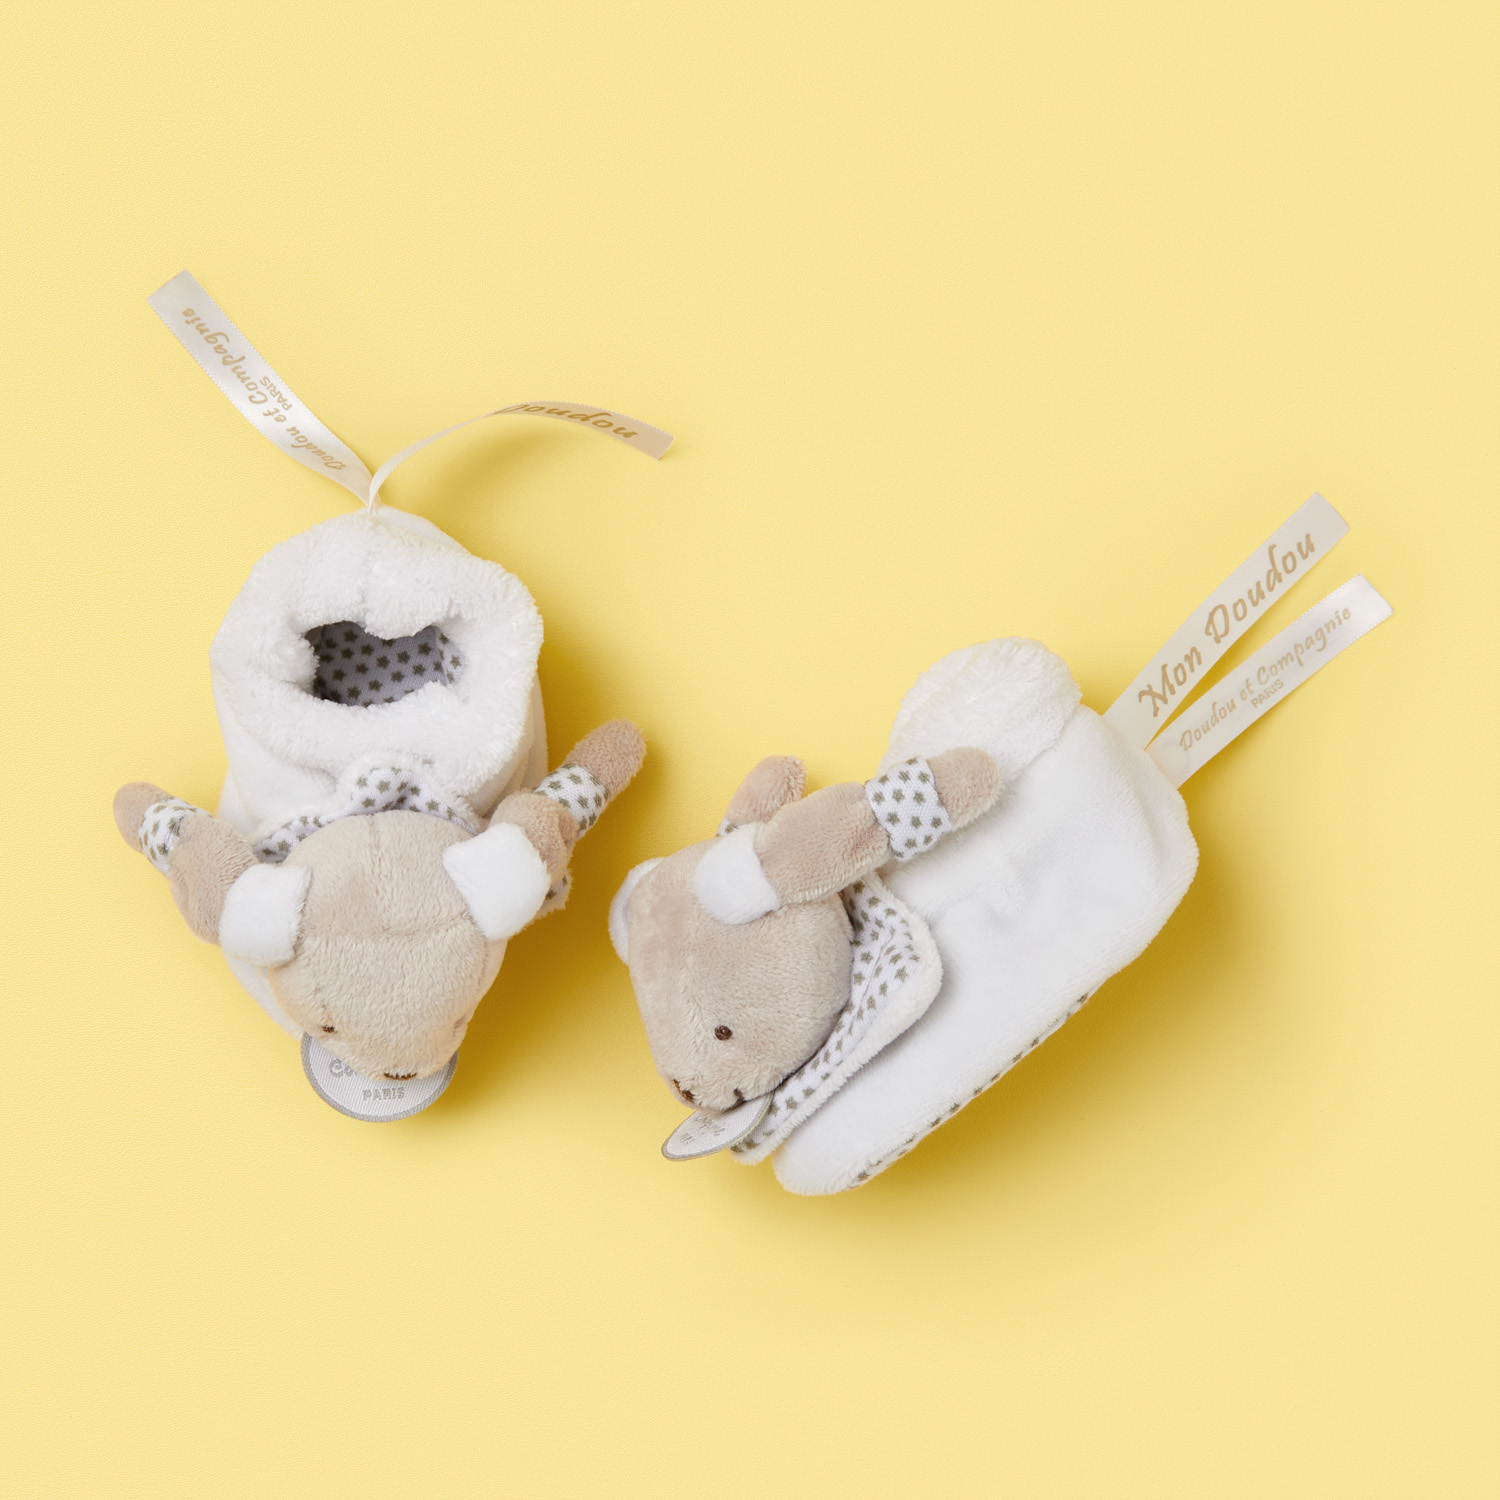 Dou Dou et Compagnie Bootie Set with Pullys